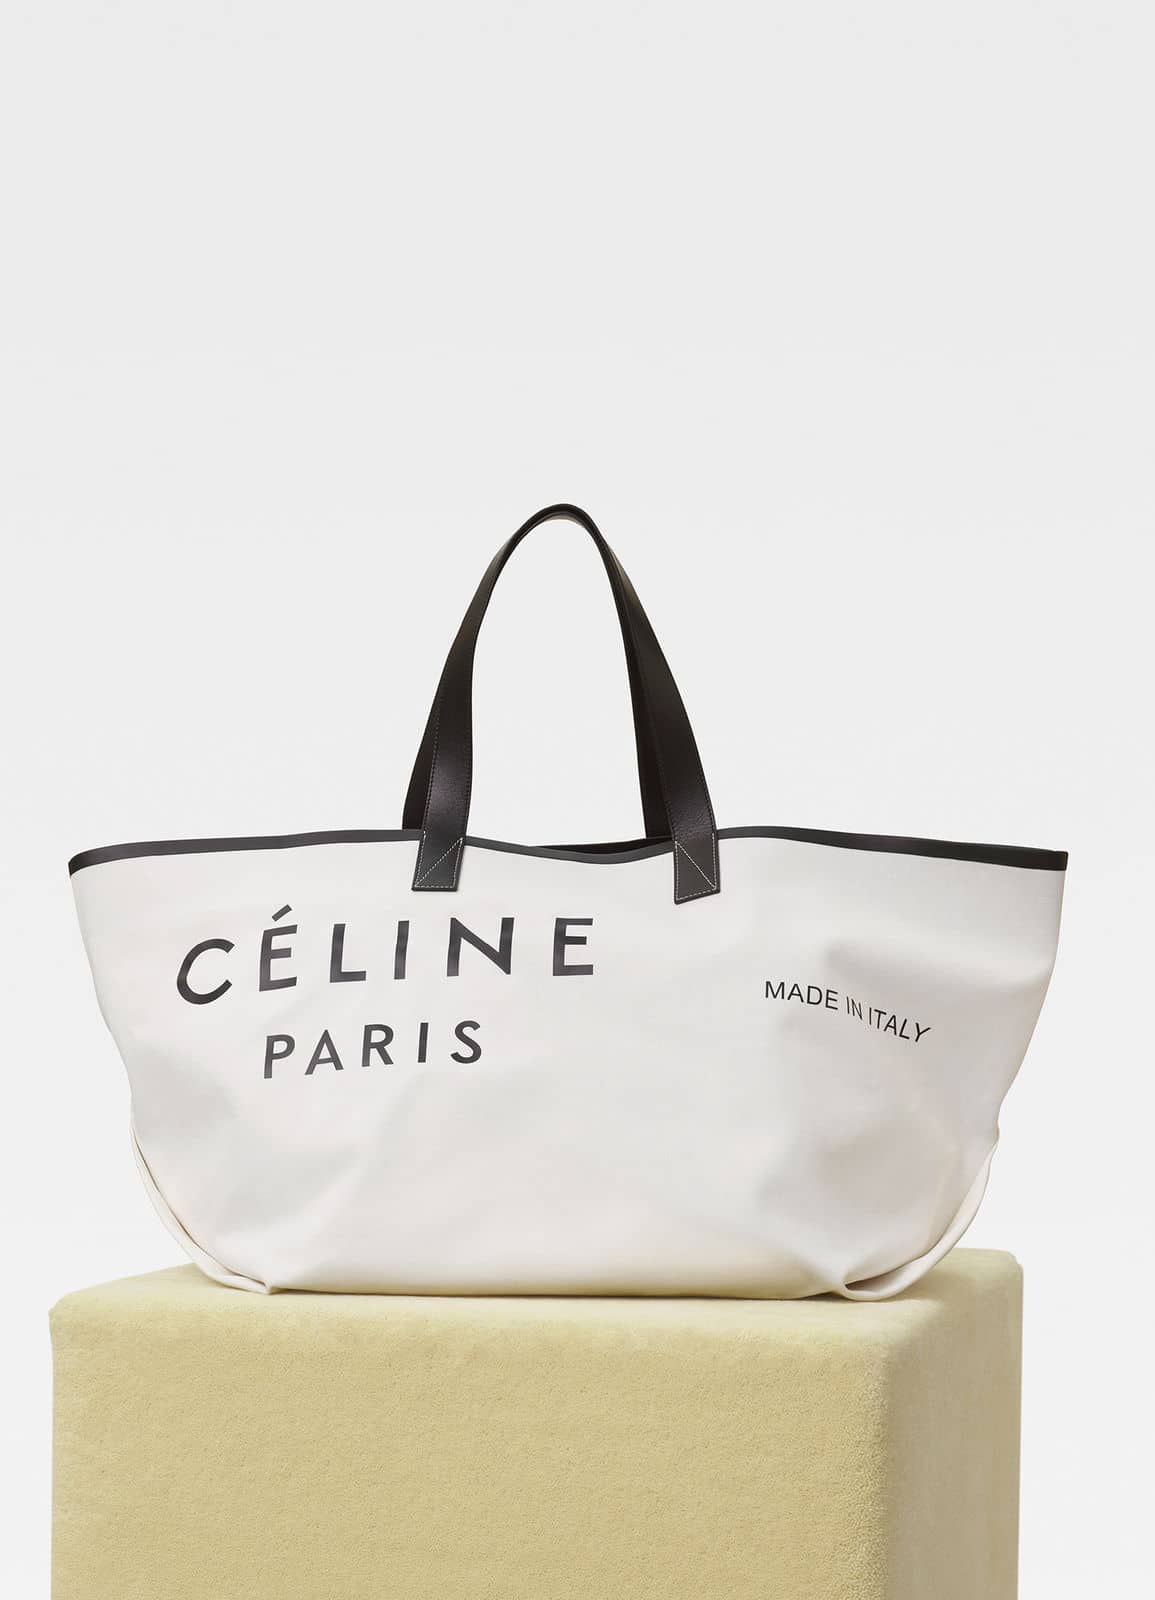 Celine Fall 2018 Bag Collection Featuring The Made In Tote